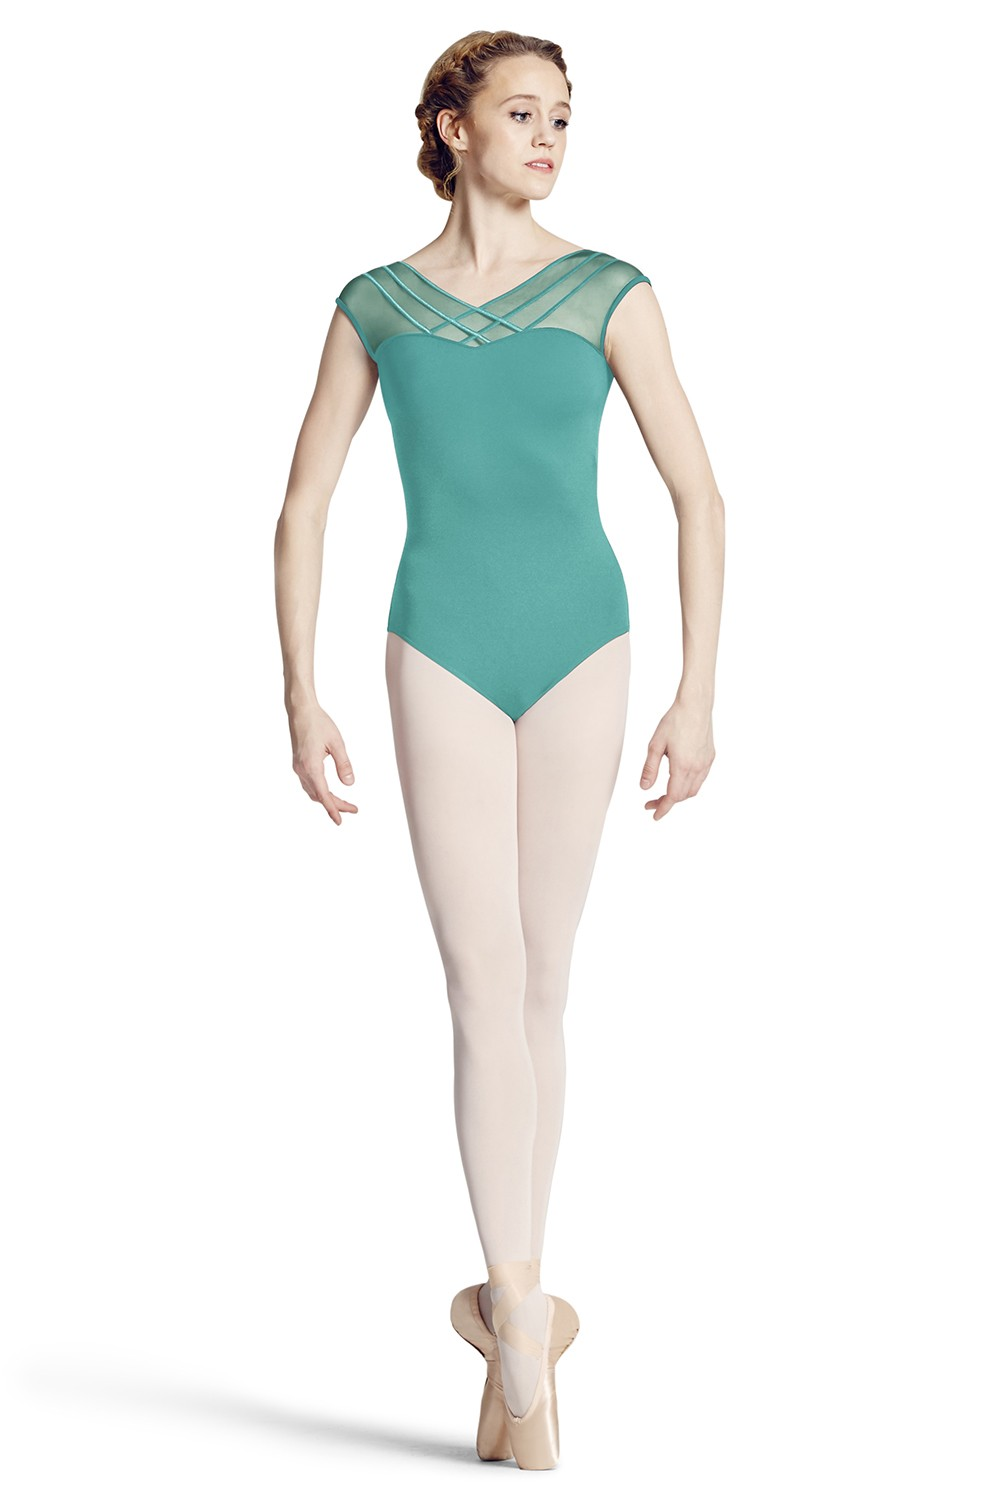 Altair Women's Dance Leotards